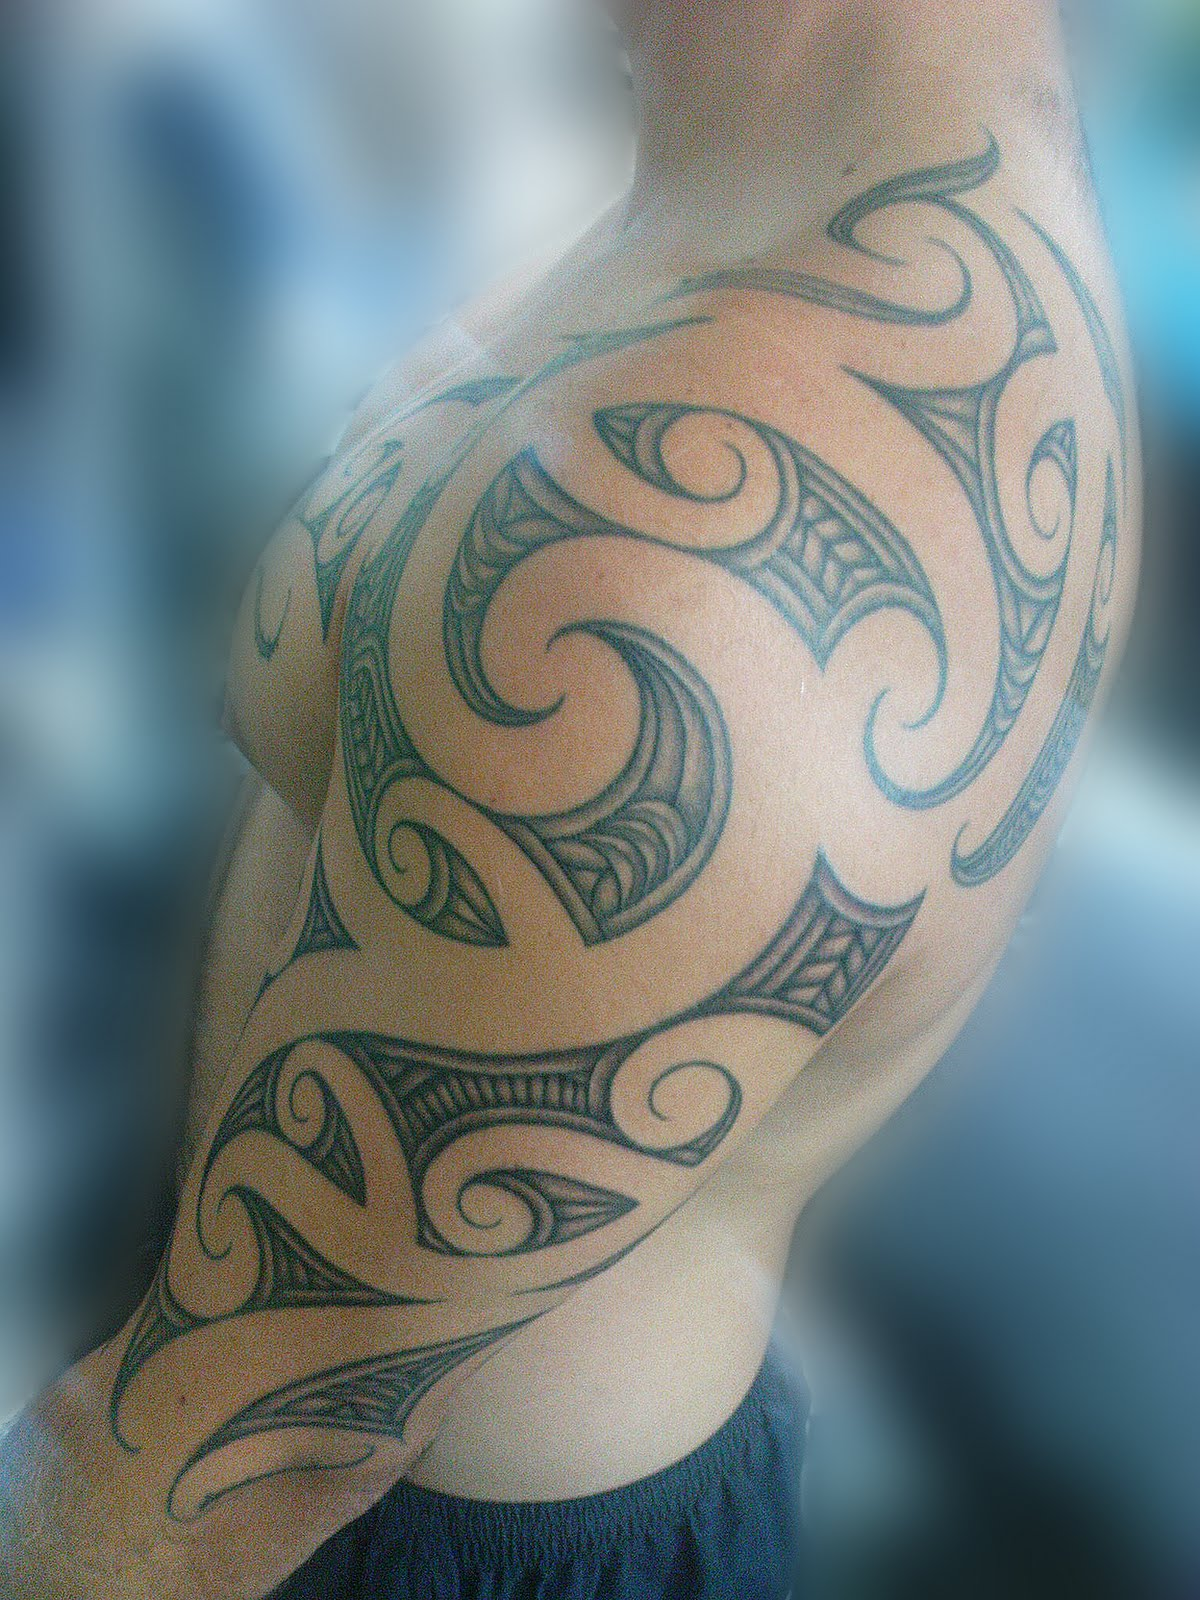 maori polynesian tattoo maori shoulder half sleeve tattoo. Black Bedroom Furniture Sets. Home Design Ideas